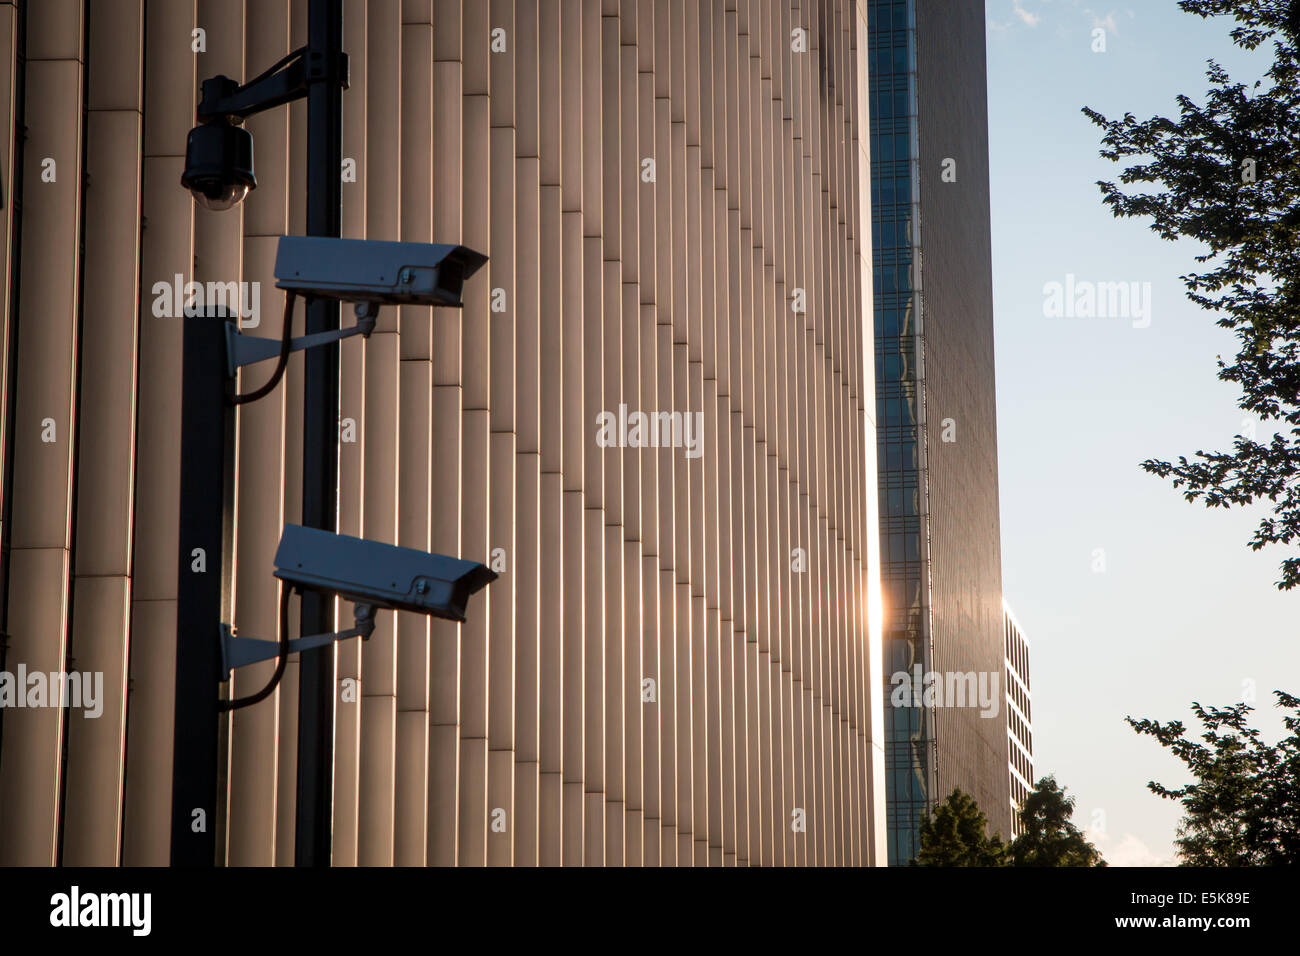 CCTV at sunset - Stock Image